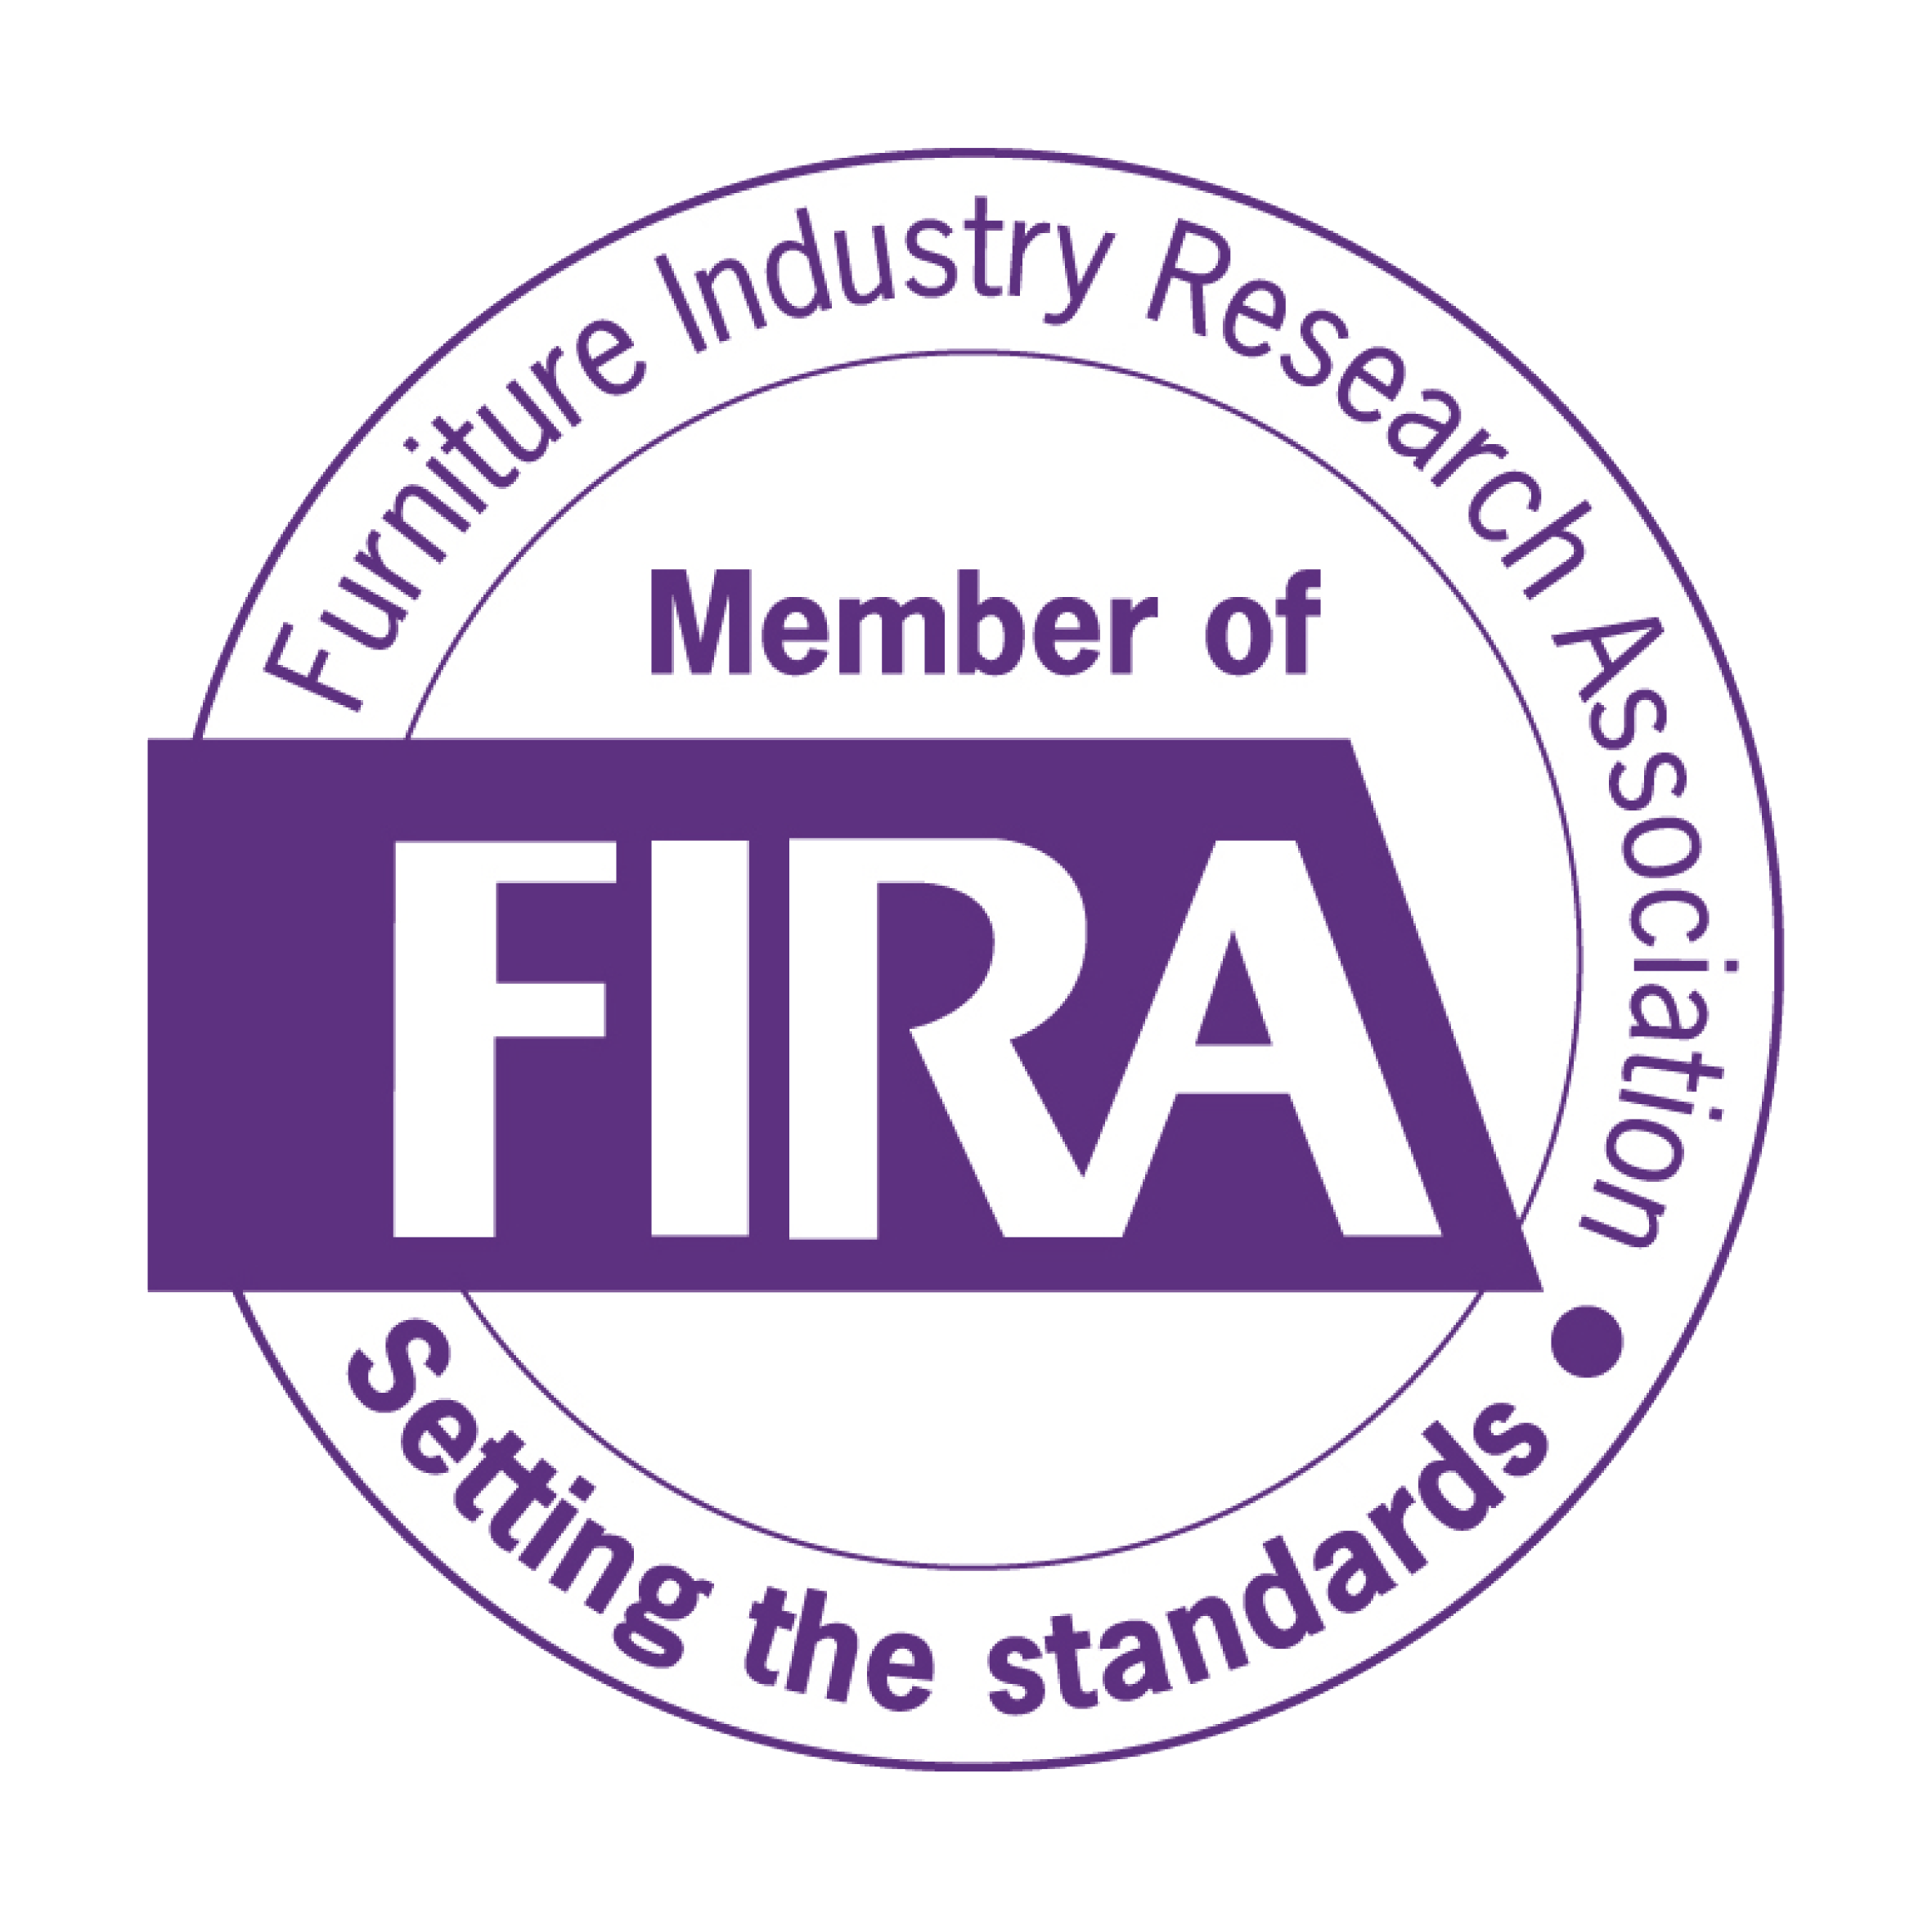 The Furniture Industry Research Association